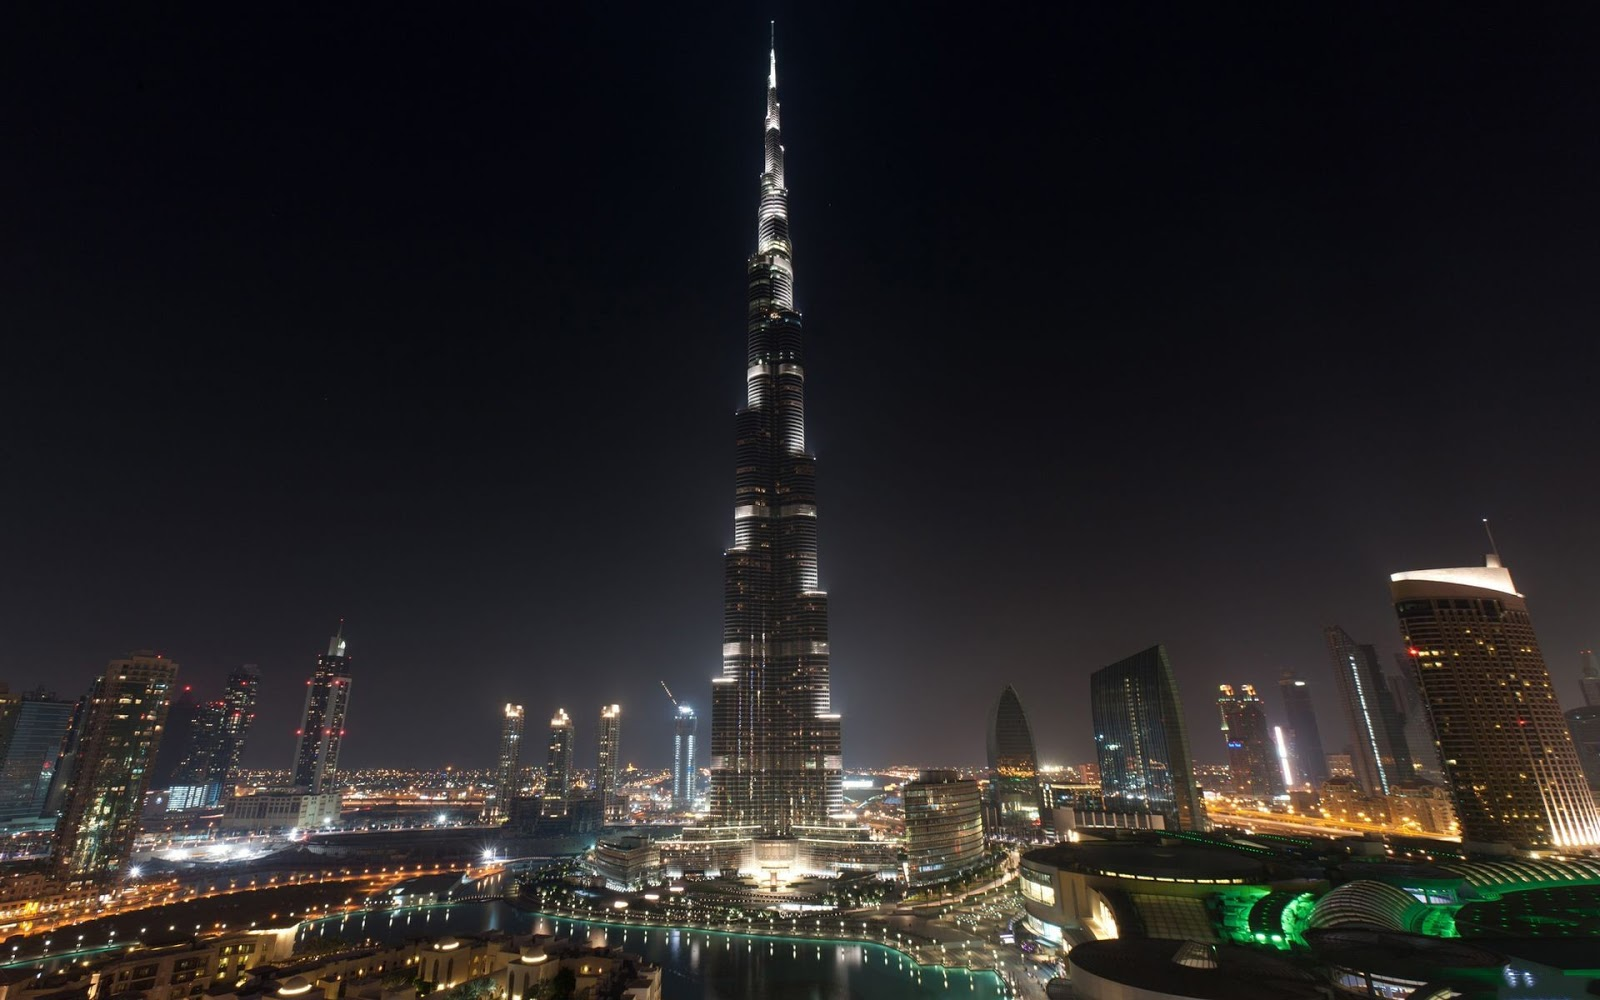 burj khalifa fresh hd wallpaper 2013 burj khalifa fresh hd 1600x1000